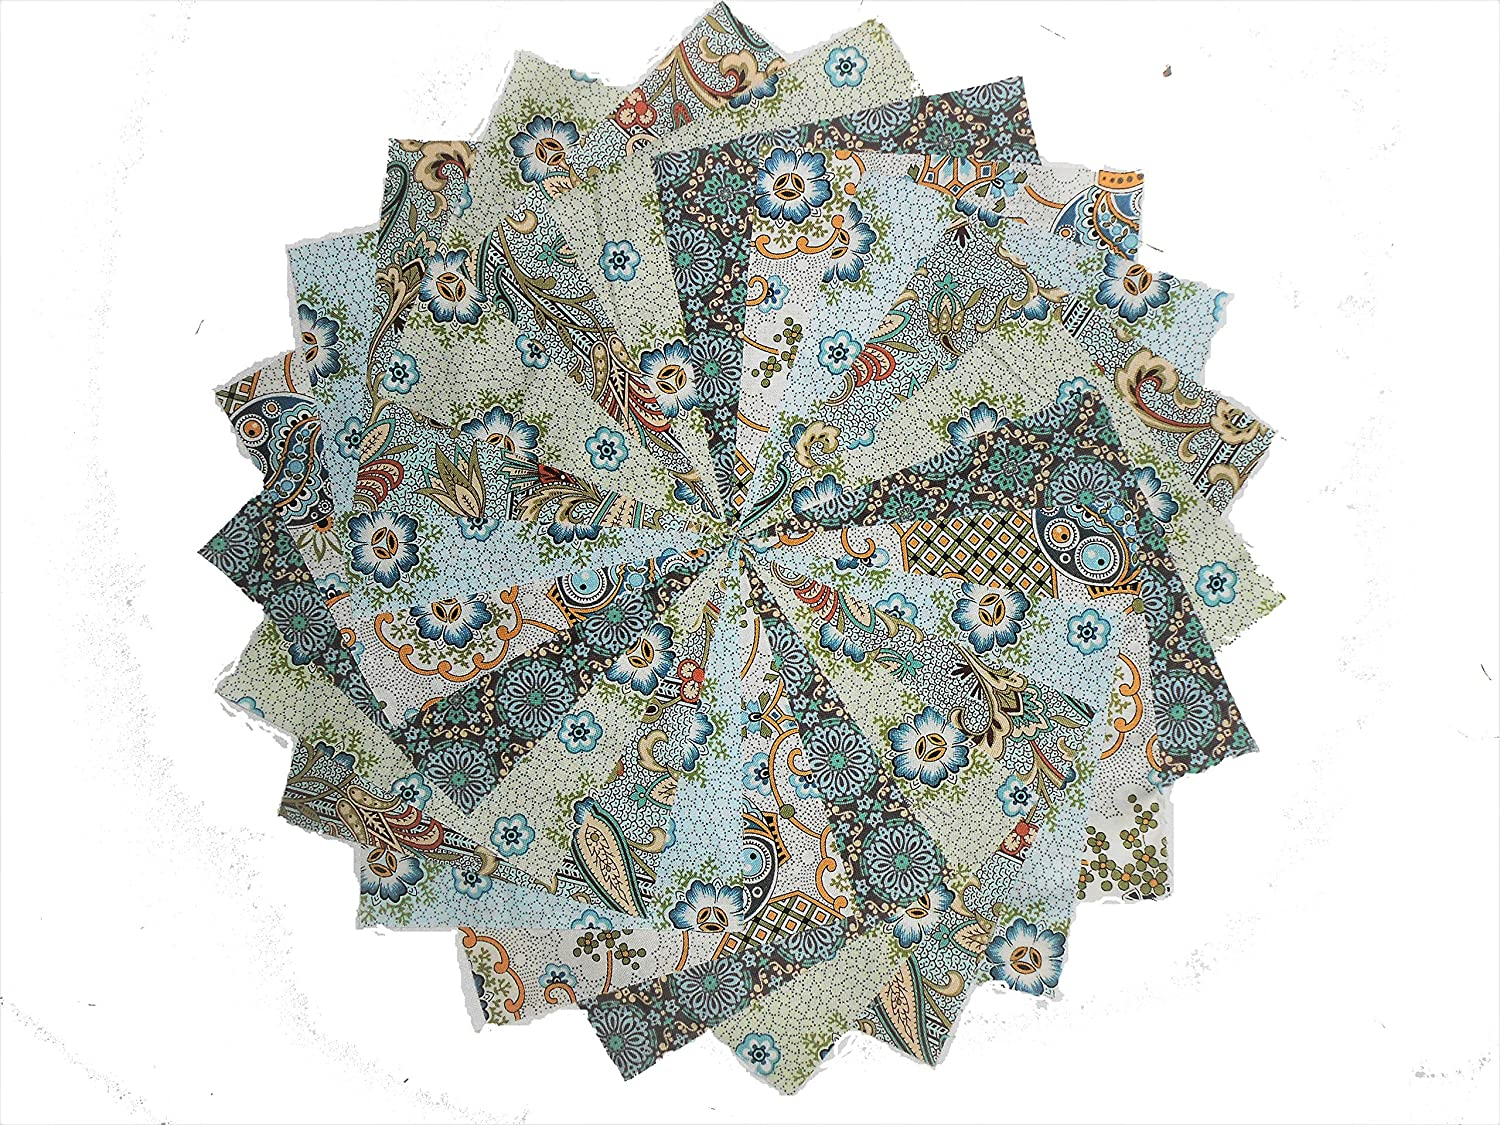 10 10 Inch Victorian Garden Quilting Squares Pack by Benartex & QT Fabrics 5 colorways